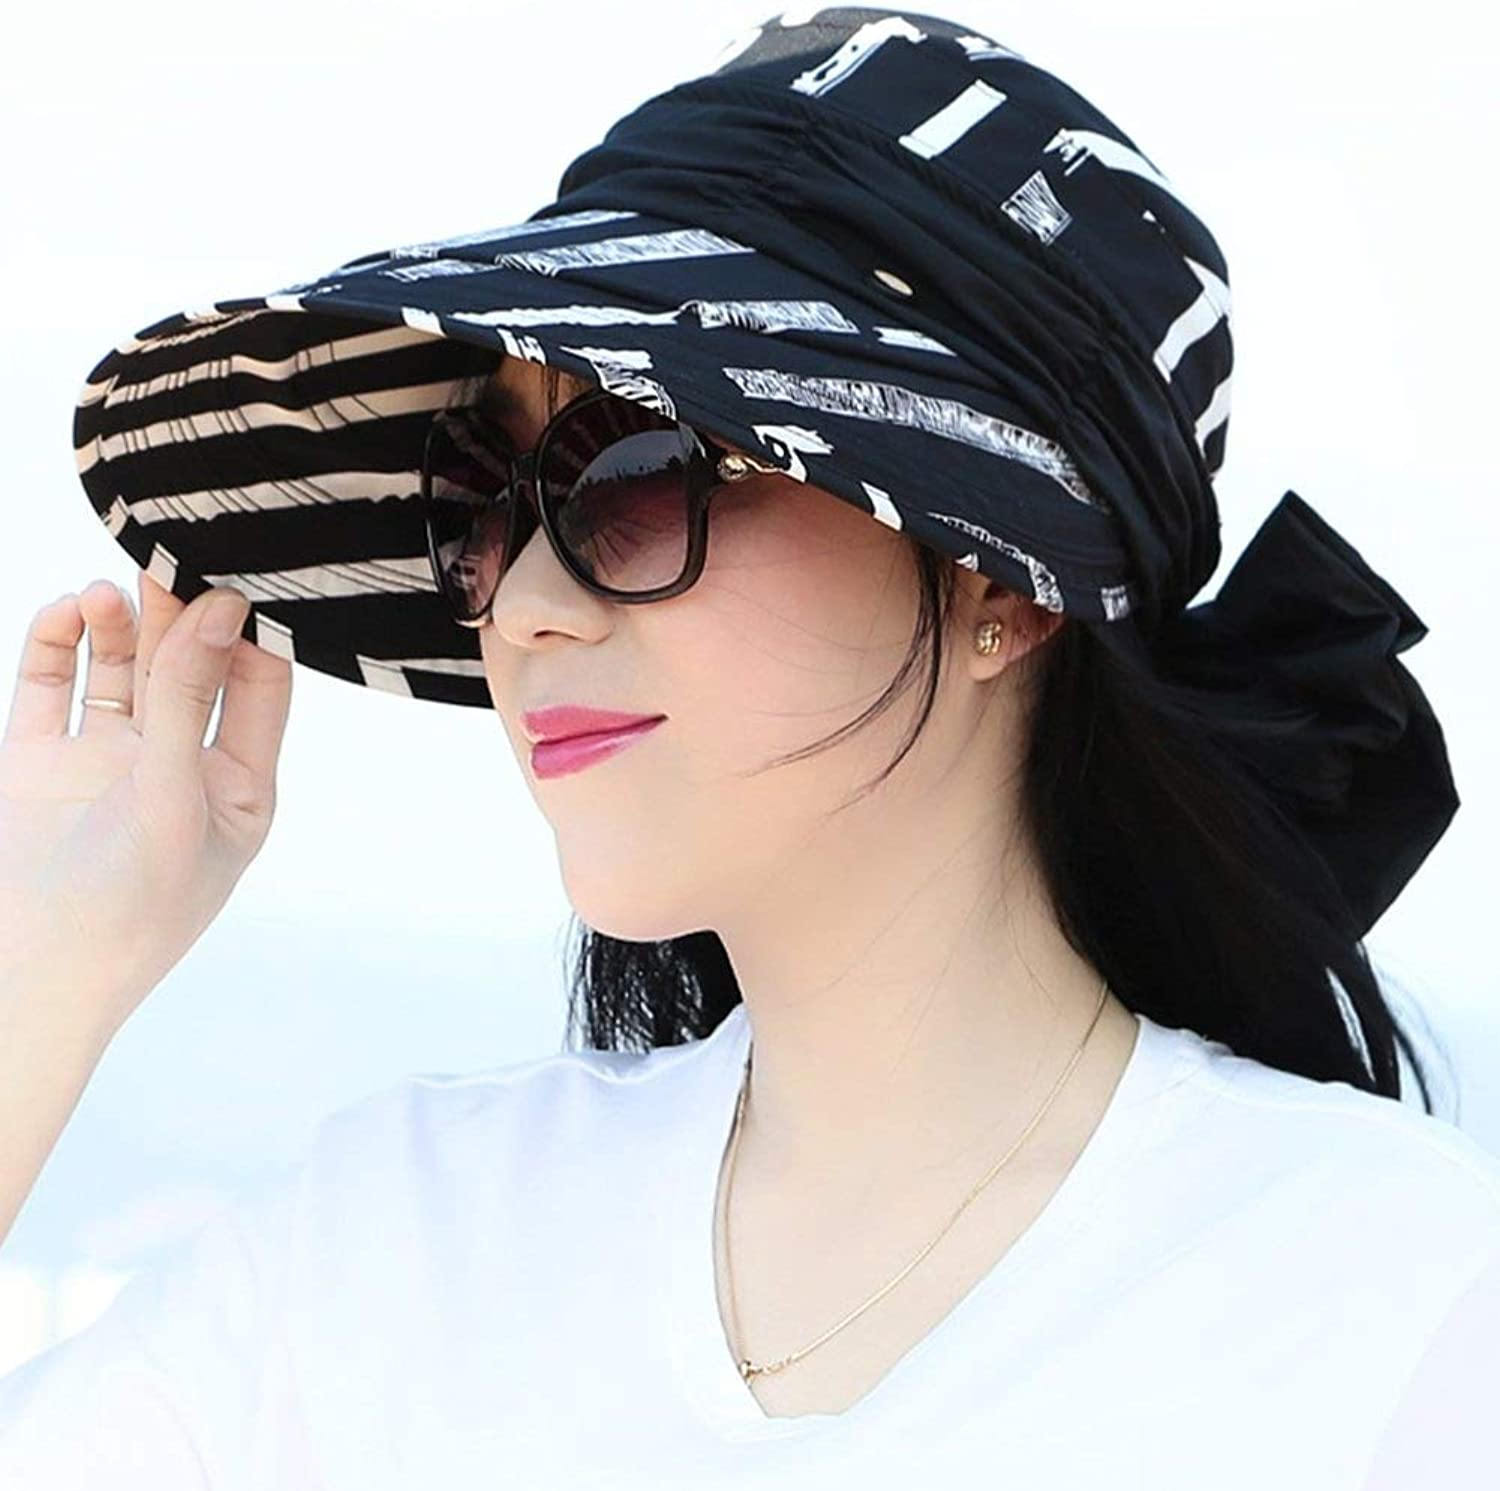 I want to fly freely Summer Hat, Sun Hats Women with Veil WindProof Rope Velcro Adjustment Foldable Packable Outdoor Beach, 4 colors Optional Summer Sun hat